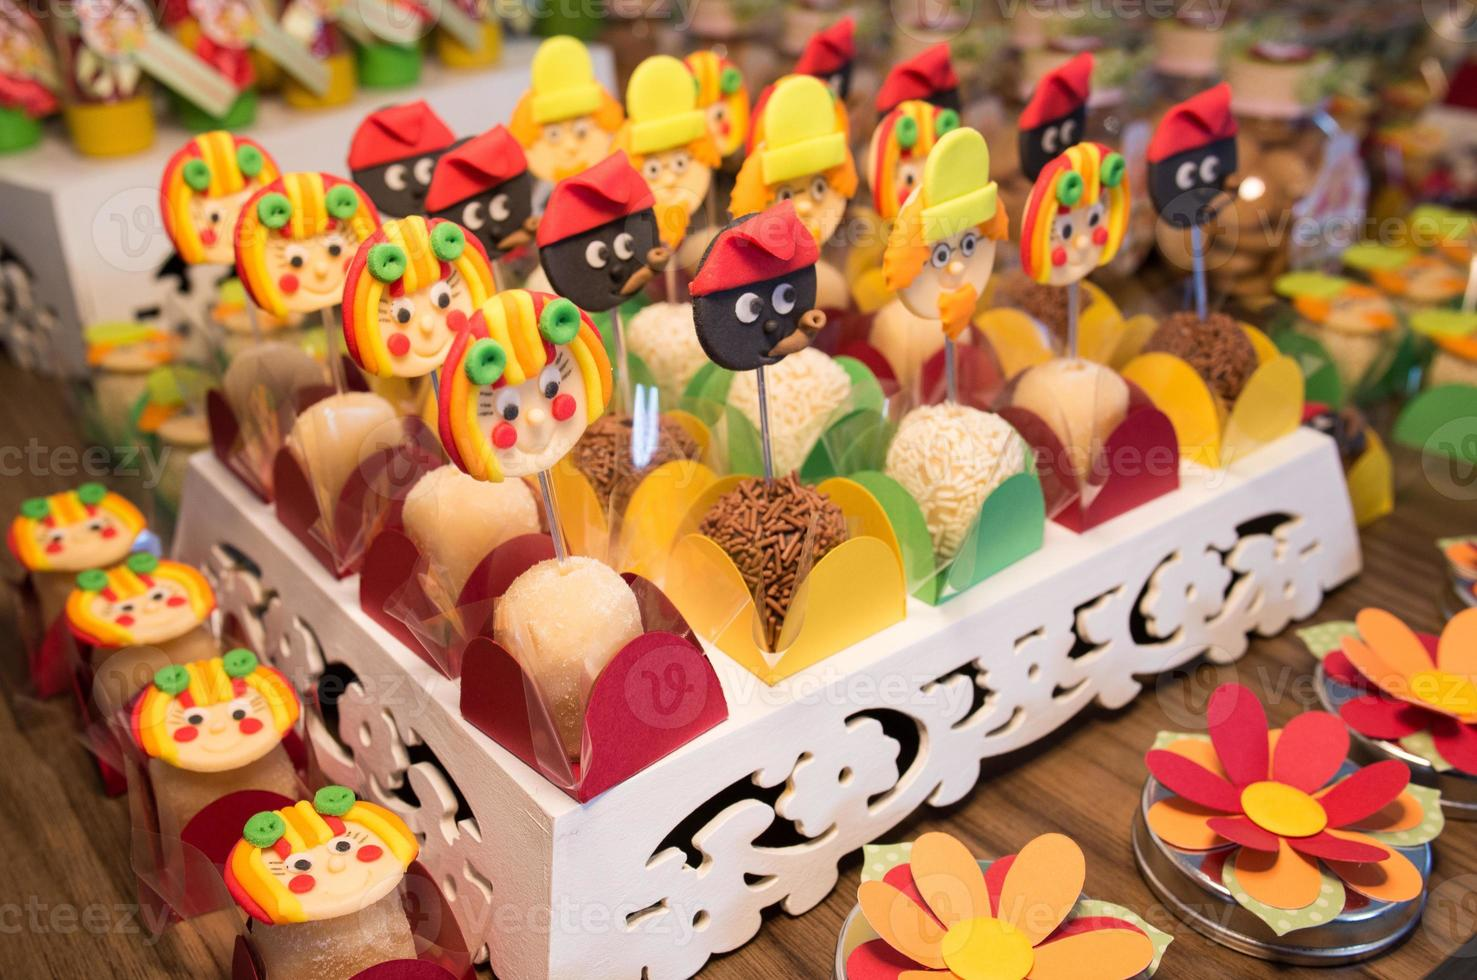 Colorful sweets for kids birthday party celebration photo